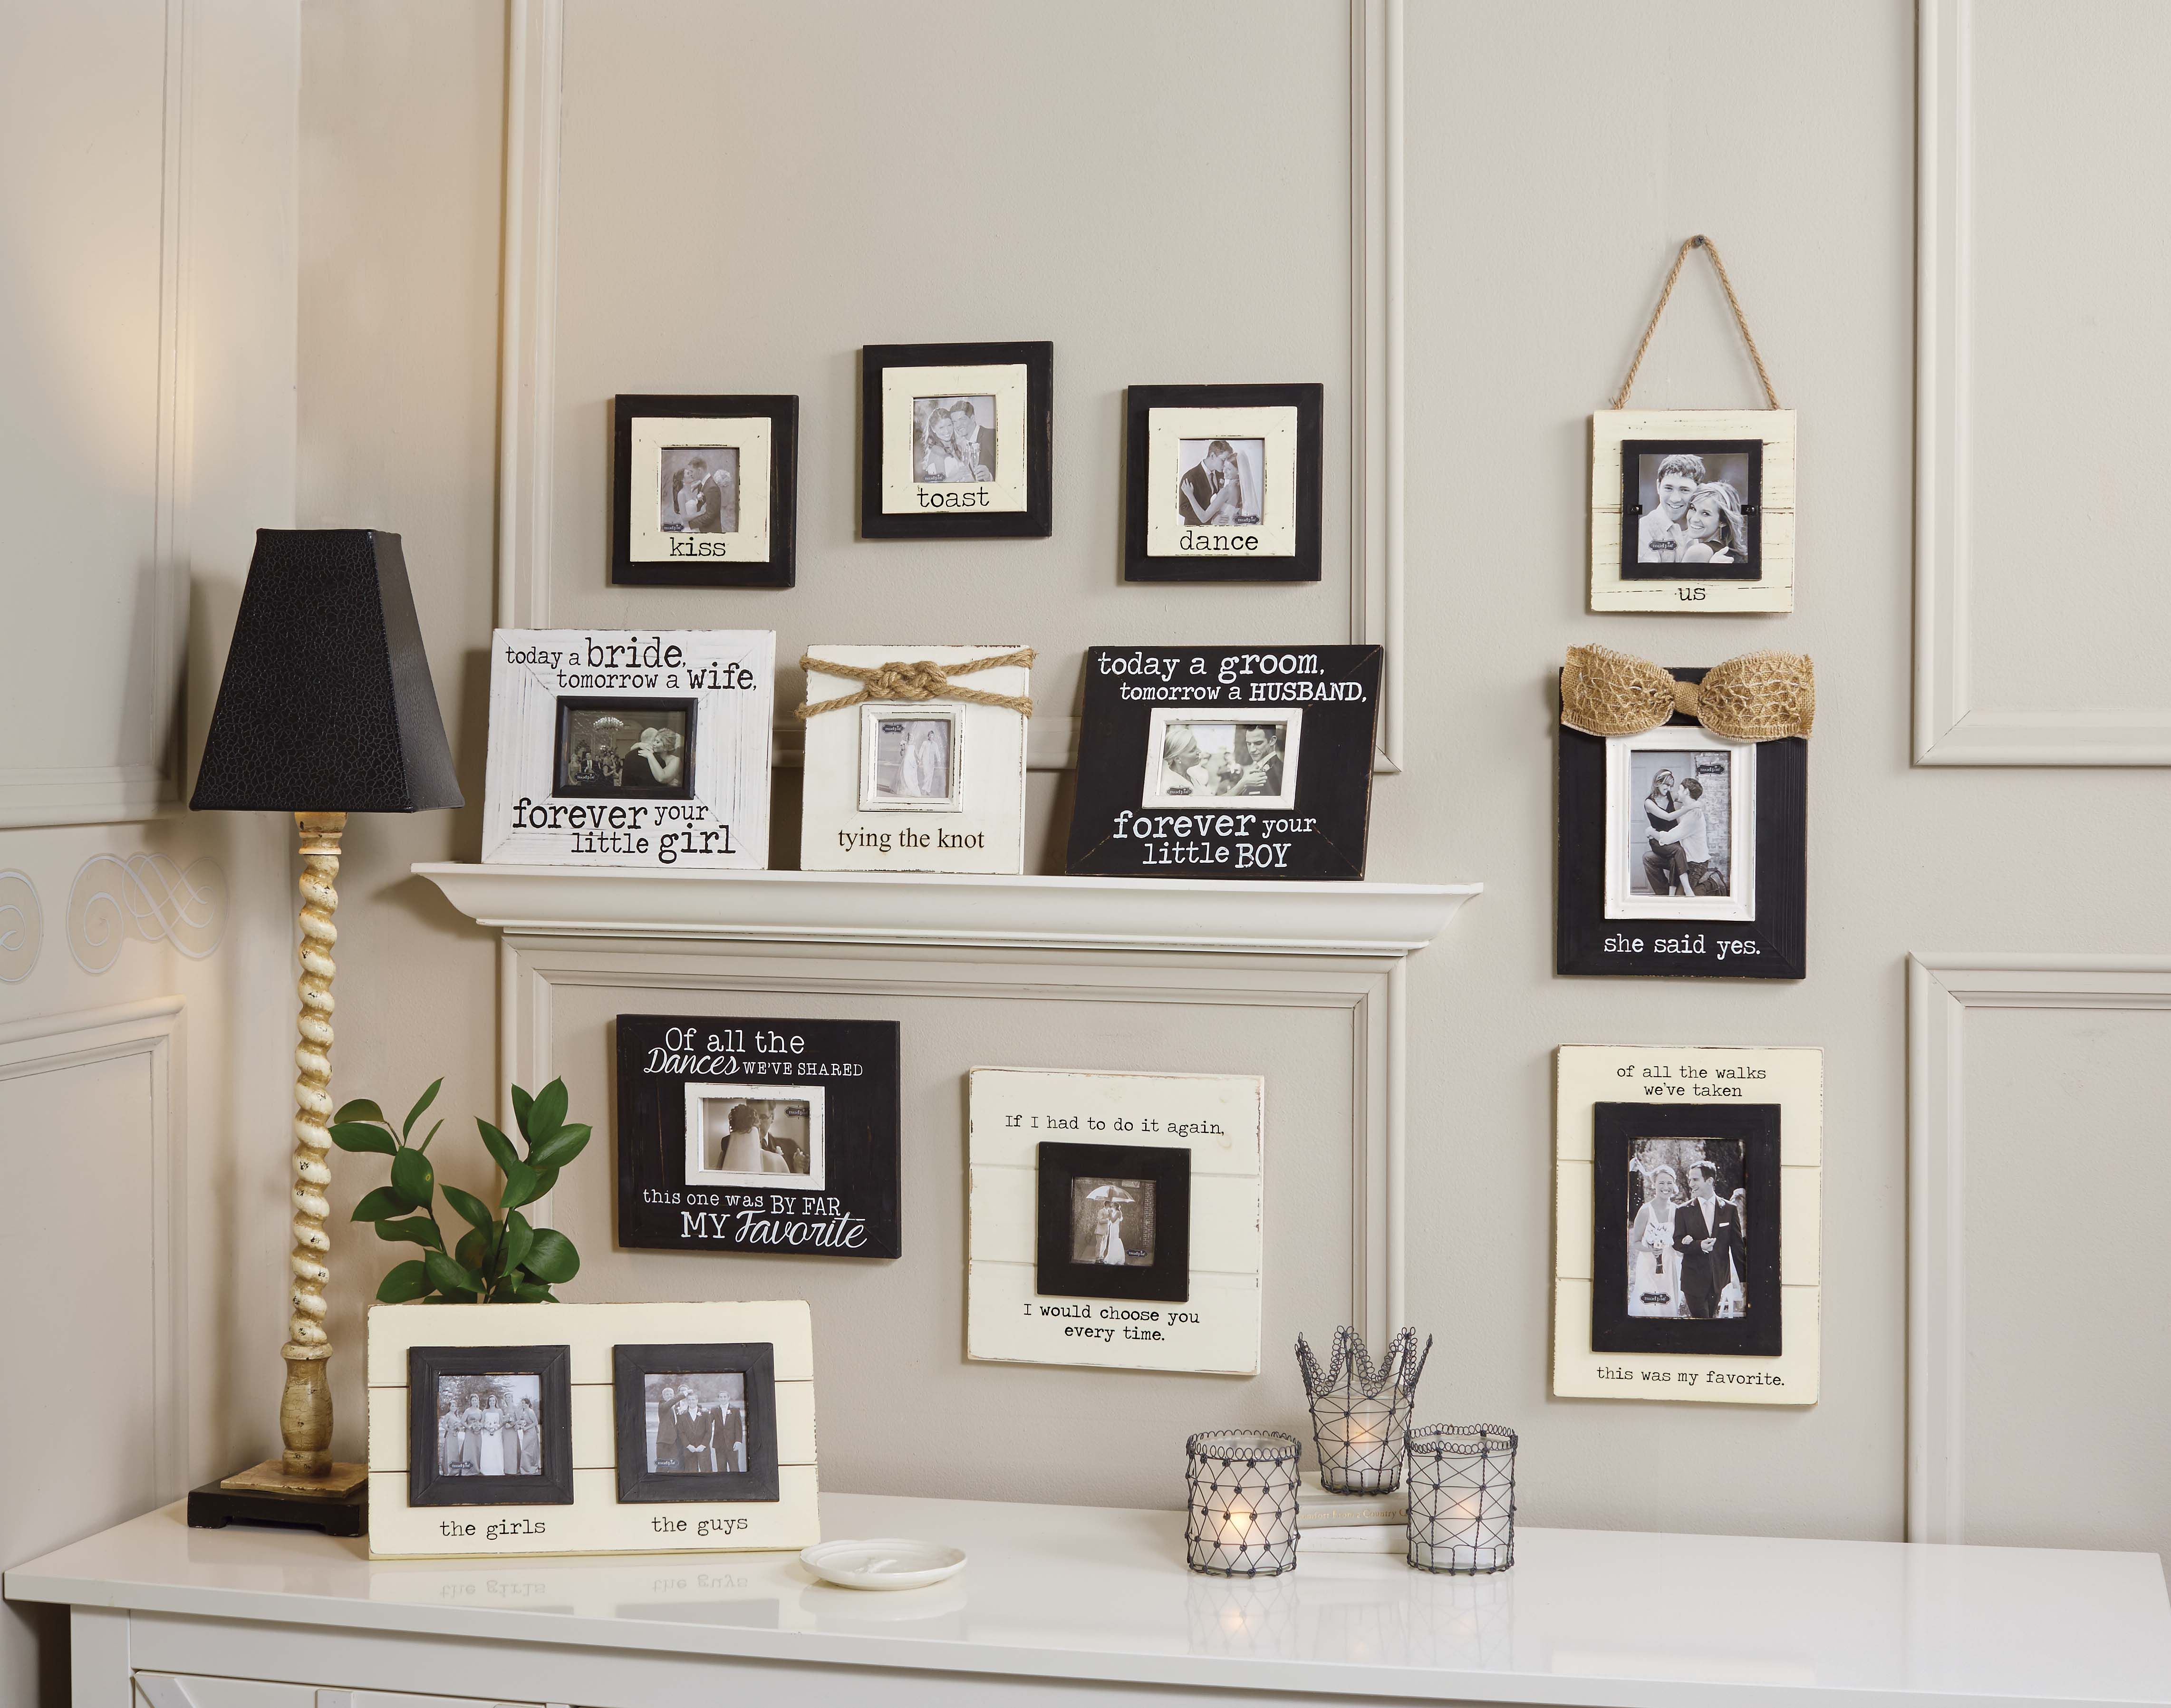 Wedding Gallery Wall Is A Great Way To Display Photos At Home